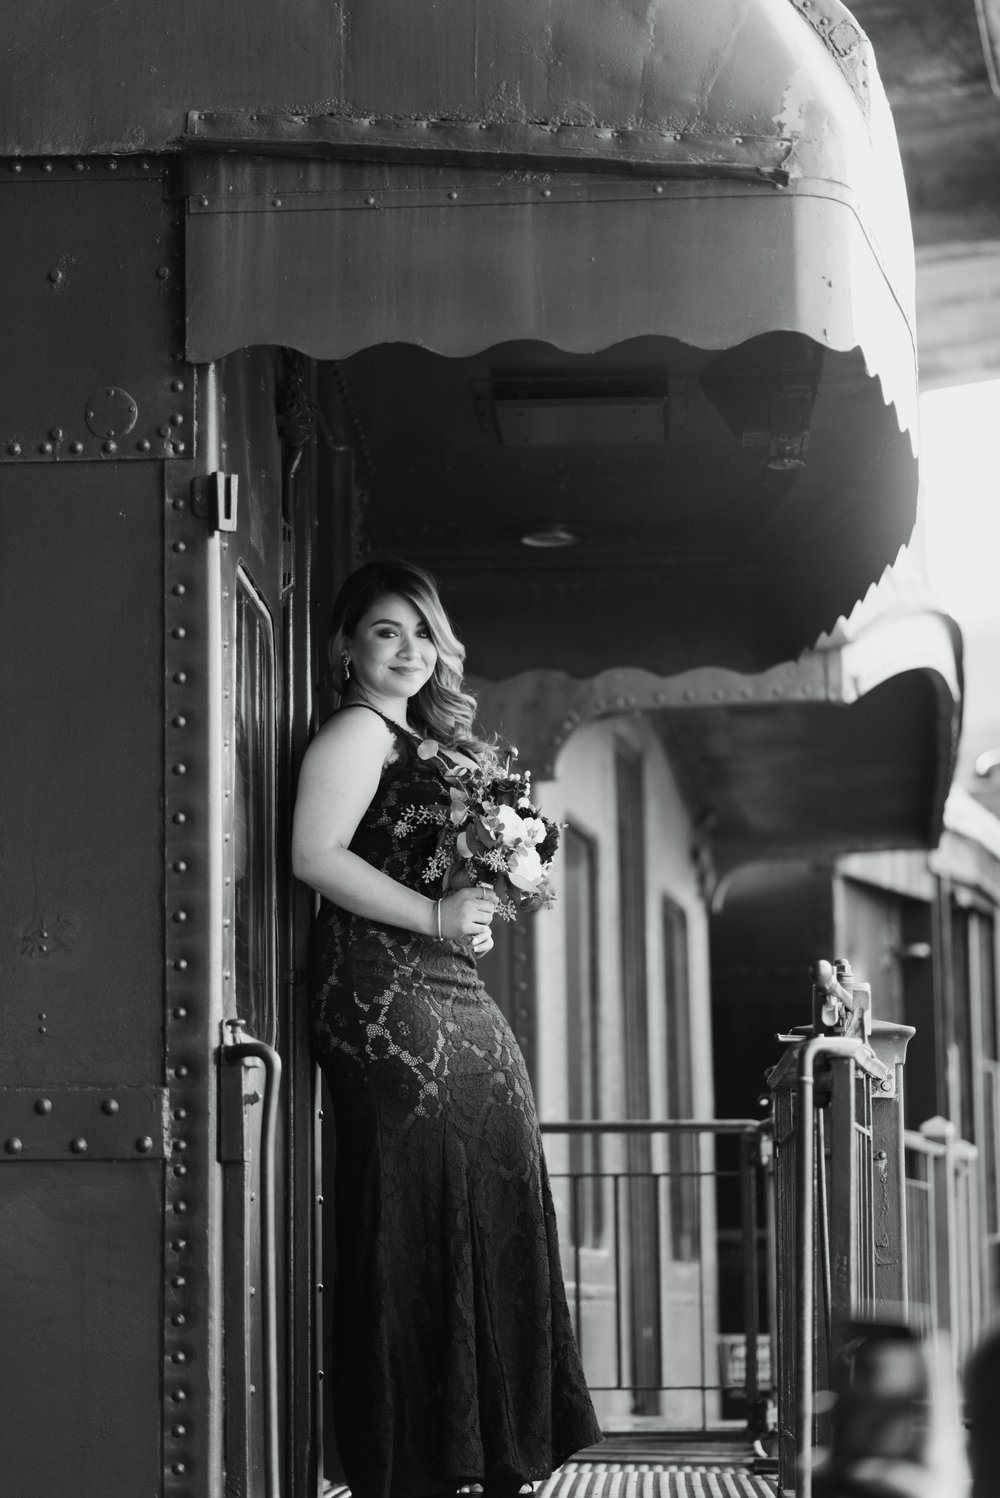 Iggy-and-yesenia-savannah-railroad-museum-wedding-meg-hill-photo- (351 of 1037).jpg